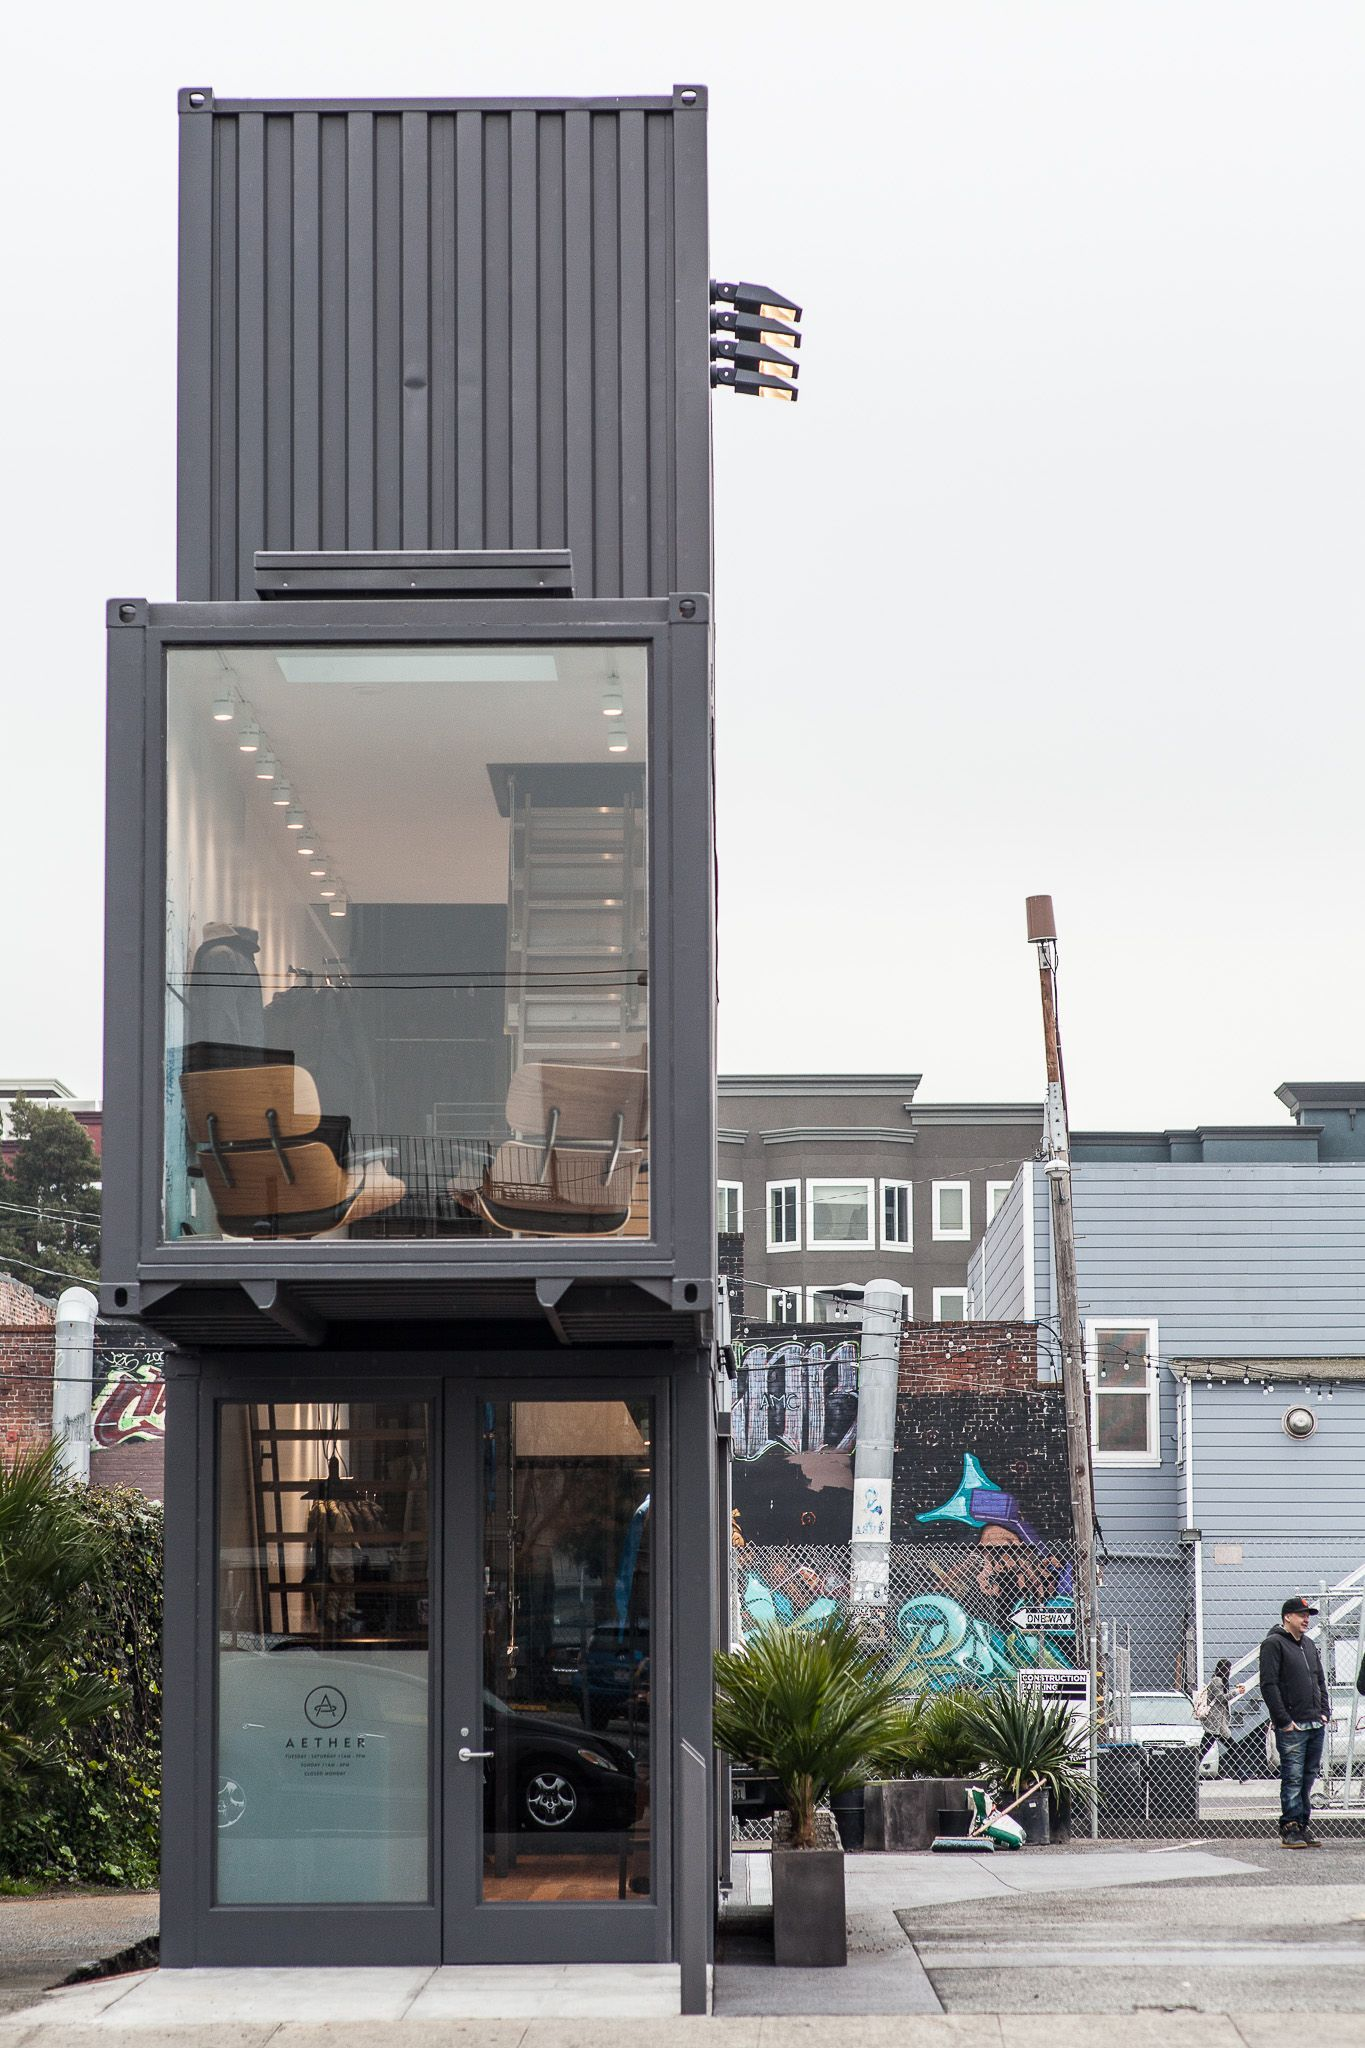 Shipping container music studio joy studio design gallery best - Concept Store Constructed From Three Black X X Shipping Containers In Hayes Valley San Francisco Click Image For More Info Visit The Slow Ottawa Reuse